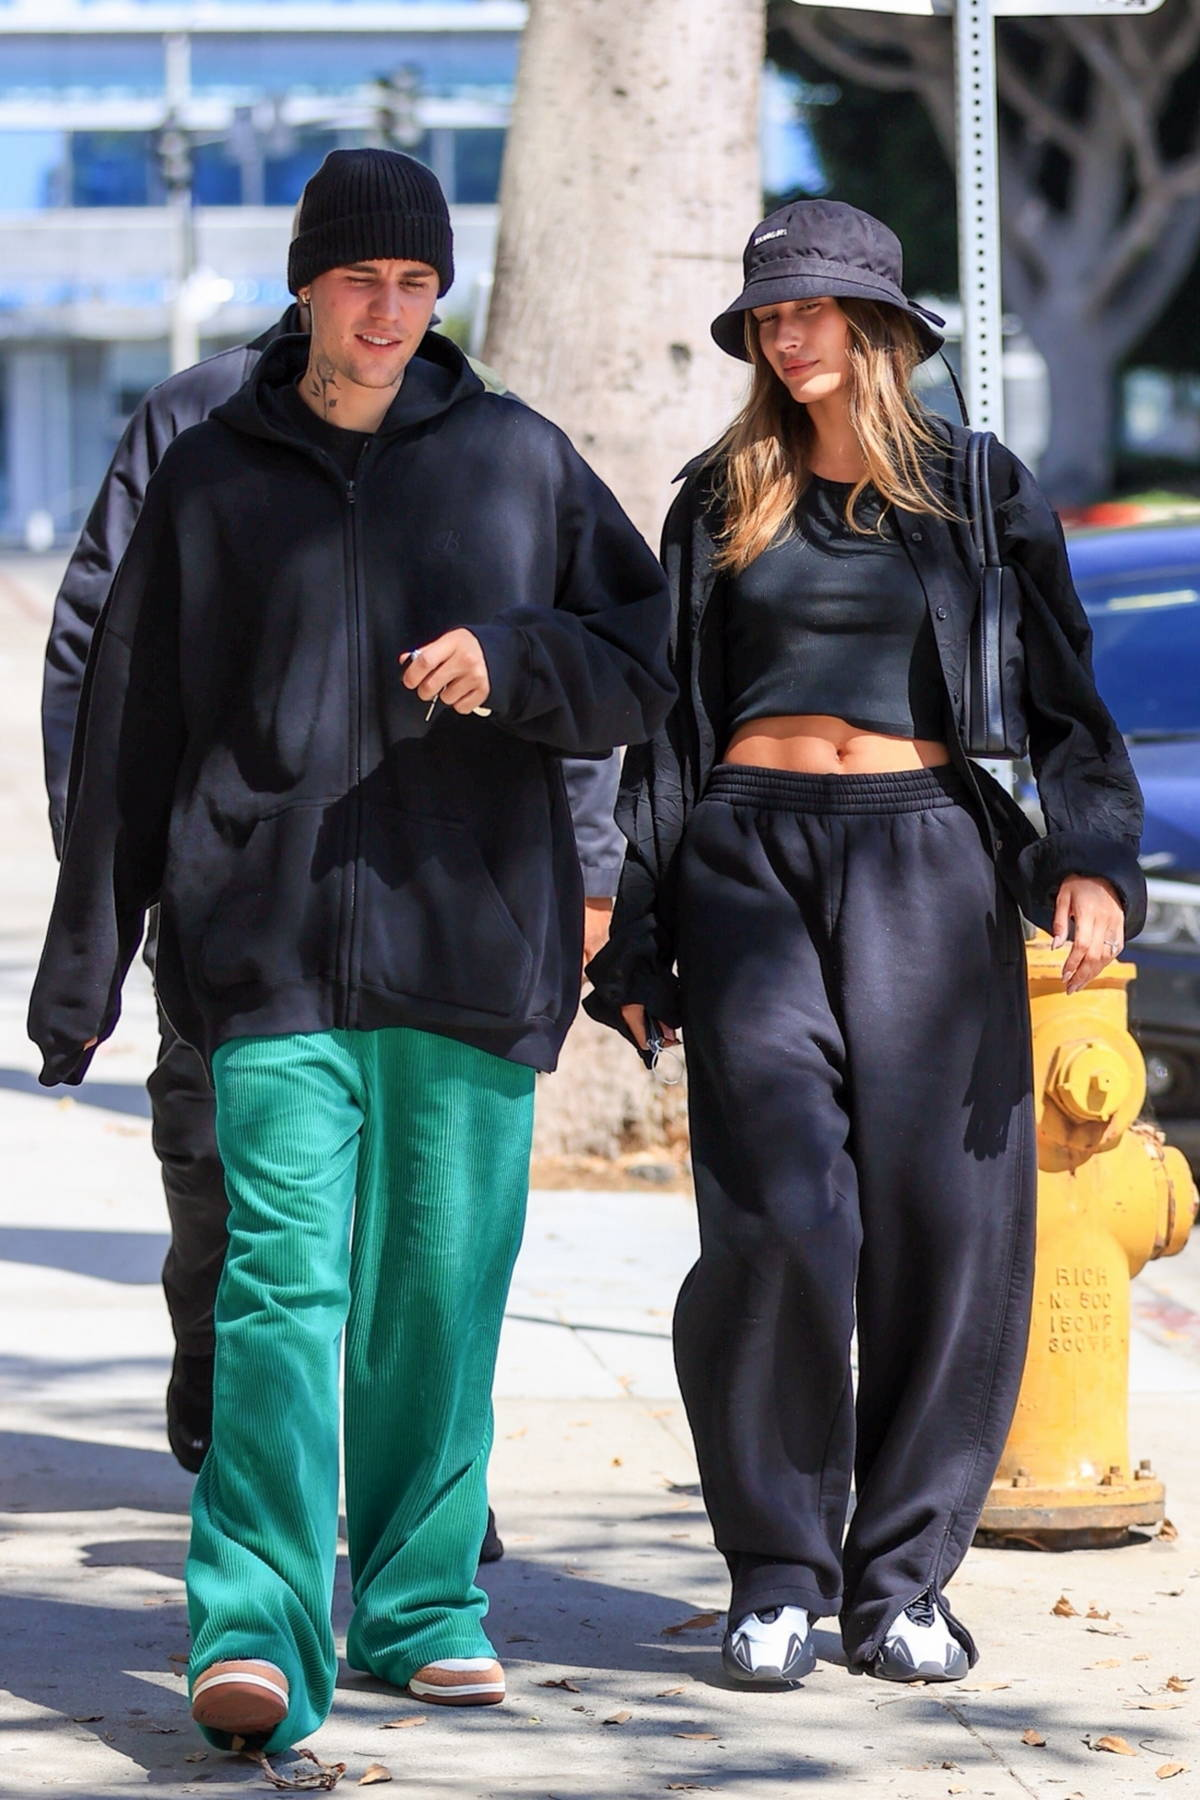 Hailey Bieber and Justin Bieber opt for a cozy look as they arrive at the SoHo house for lunch in Los Angeles